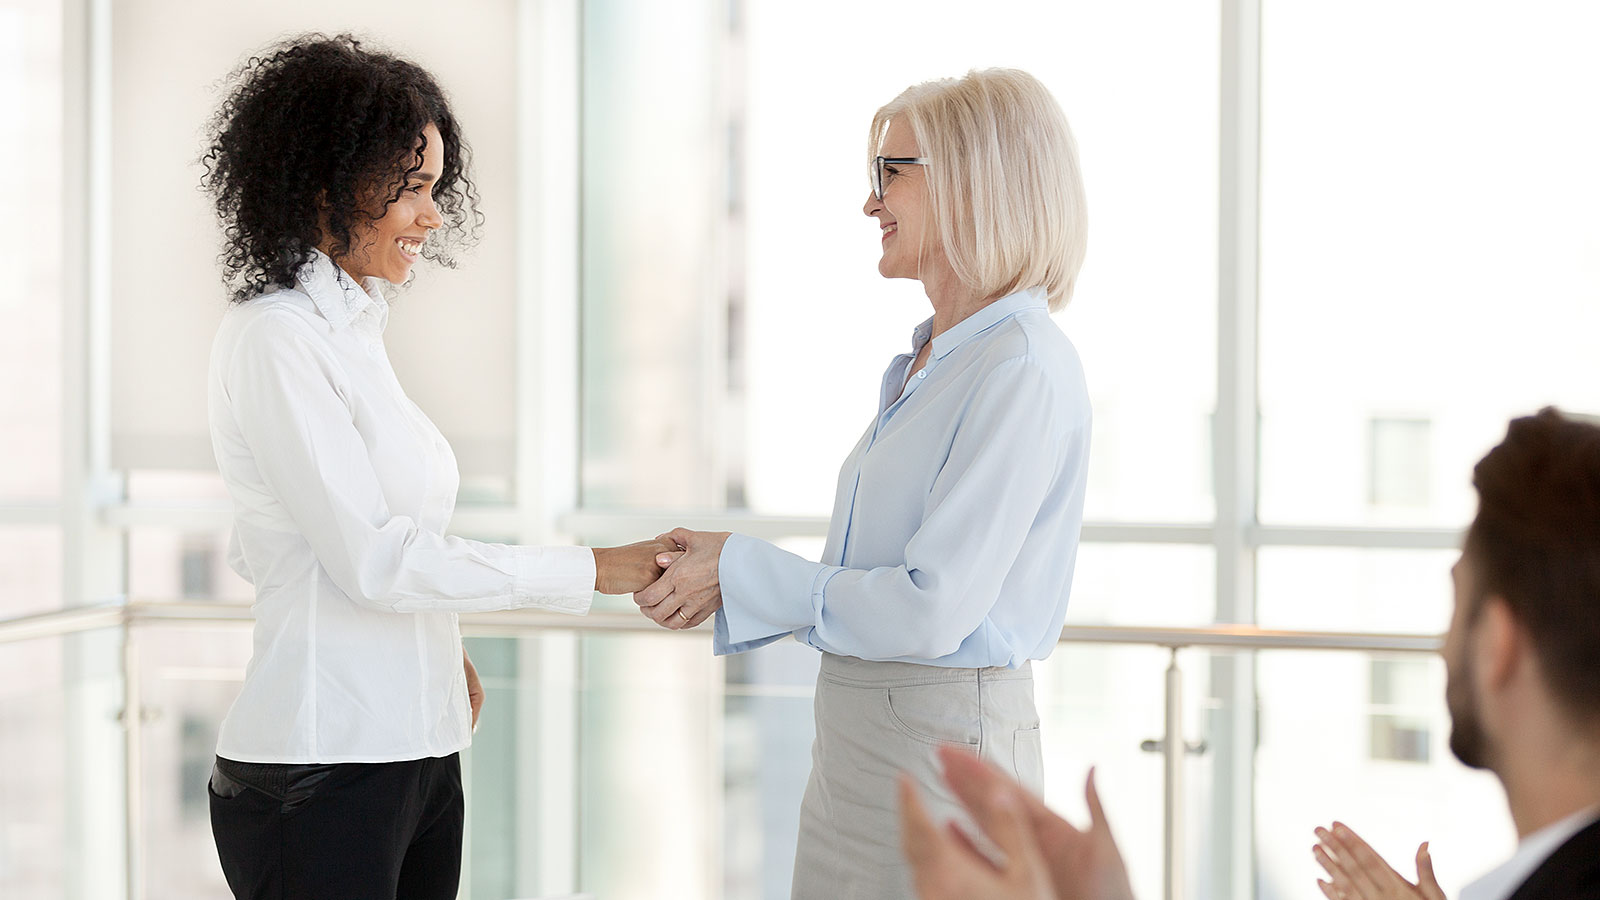 How to weigh the pros and cons of a job promotion